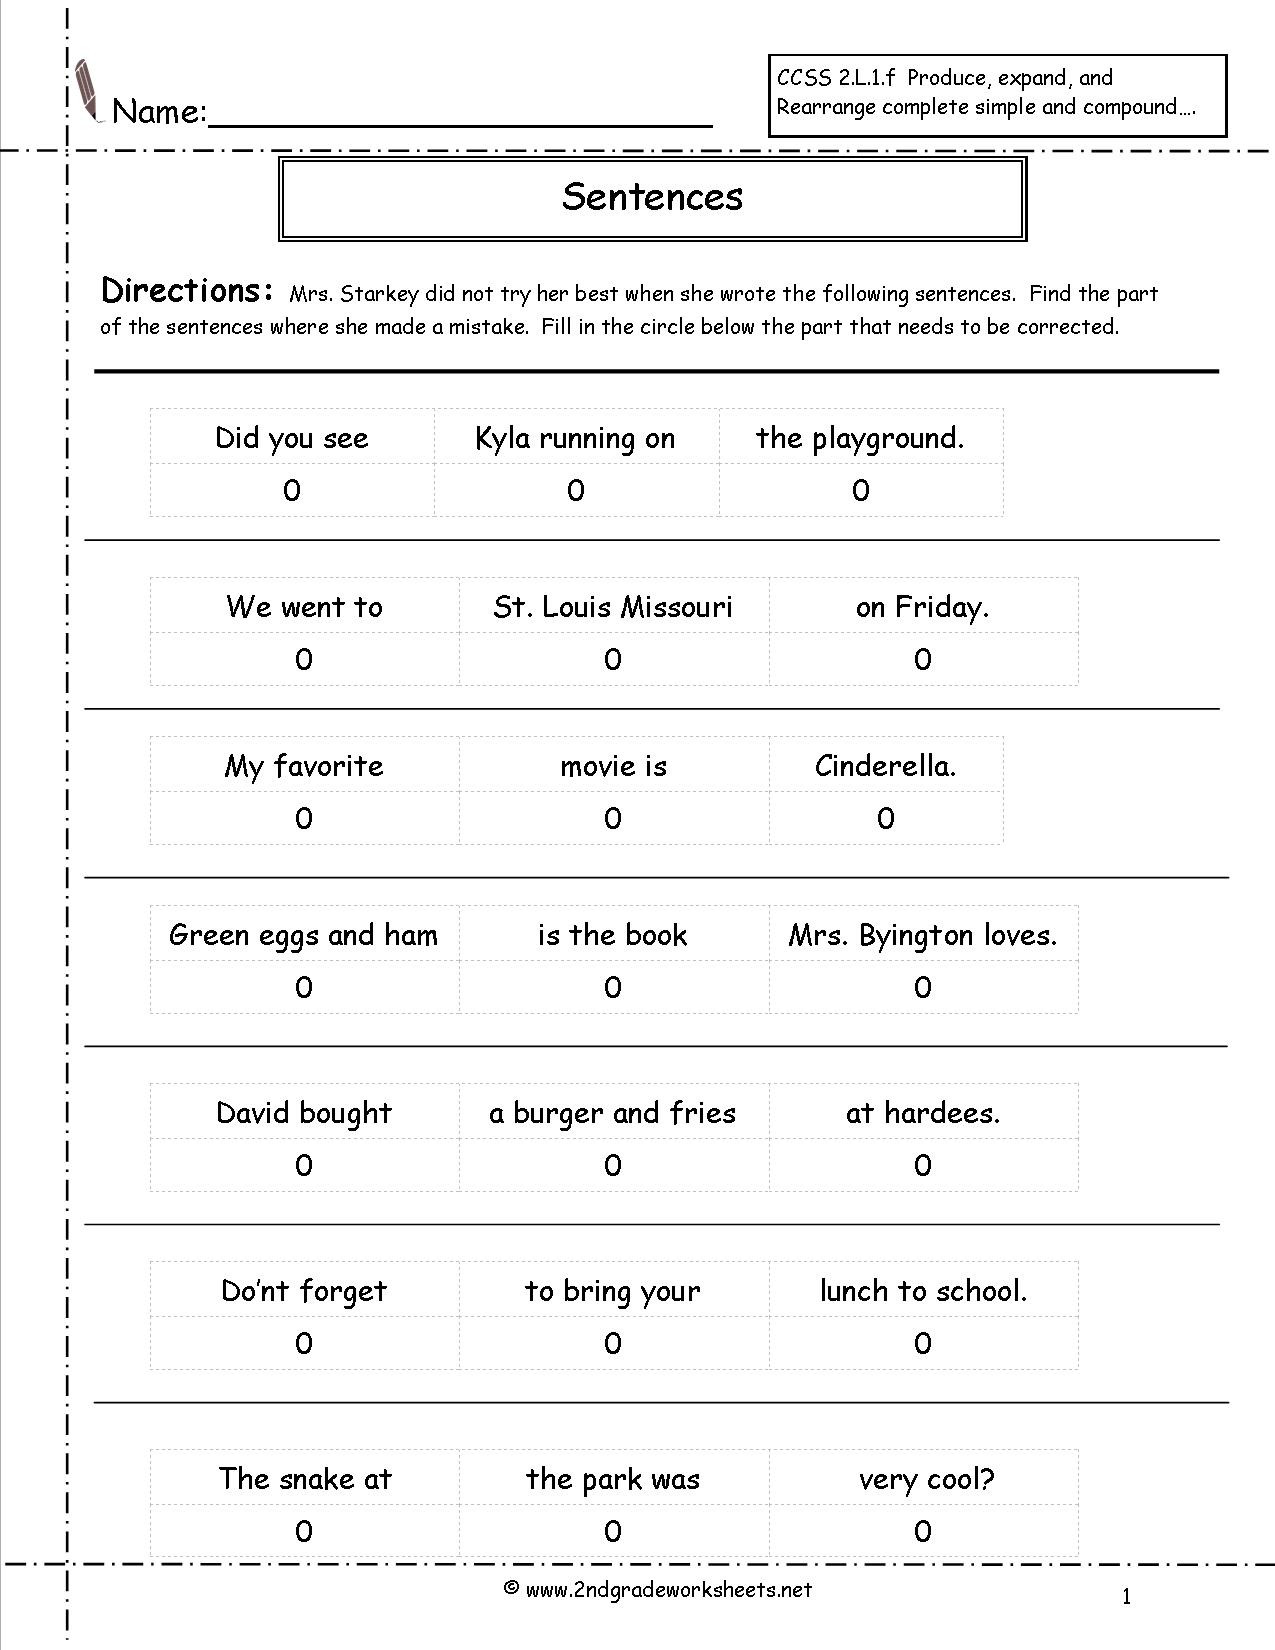 Complete Sentences Worksheets 3rd Grade Sentence Fragment Worksheet